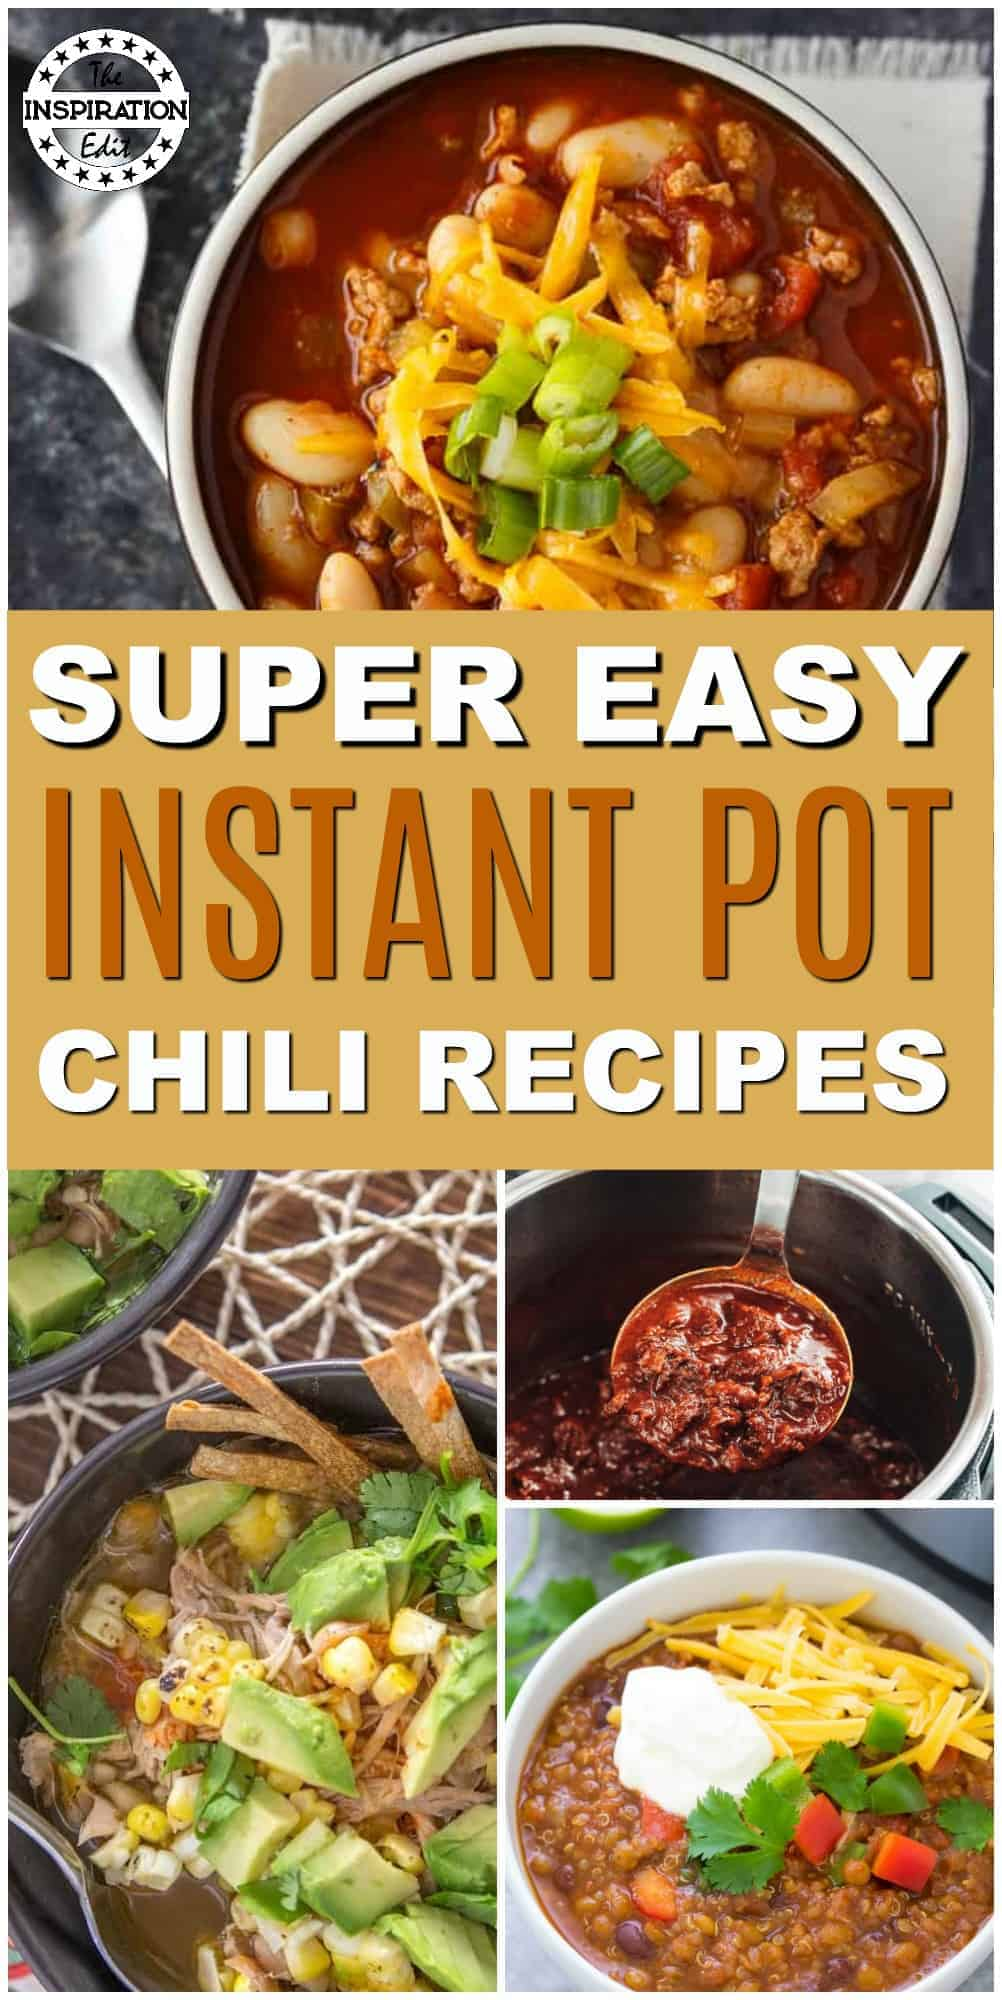 Easy Instant Pot Chili Recipes The Inspiration Edit